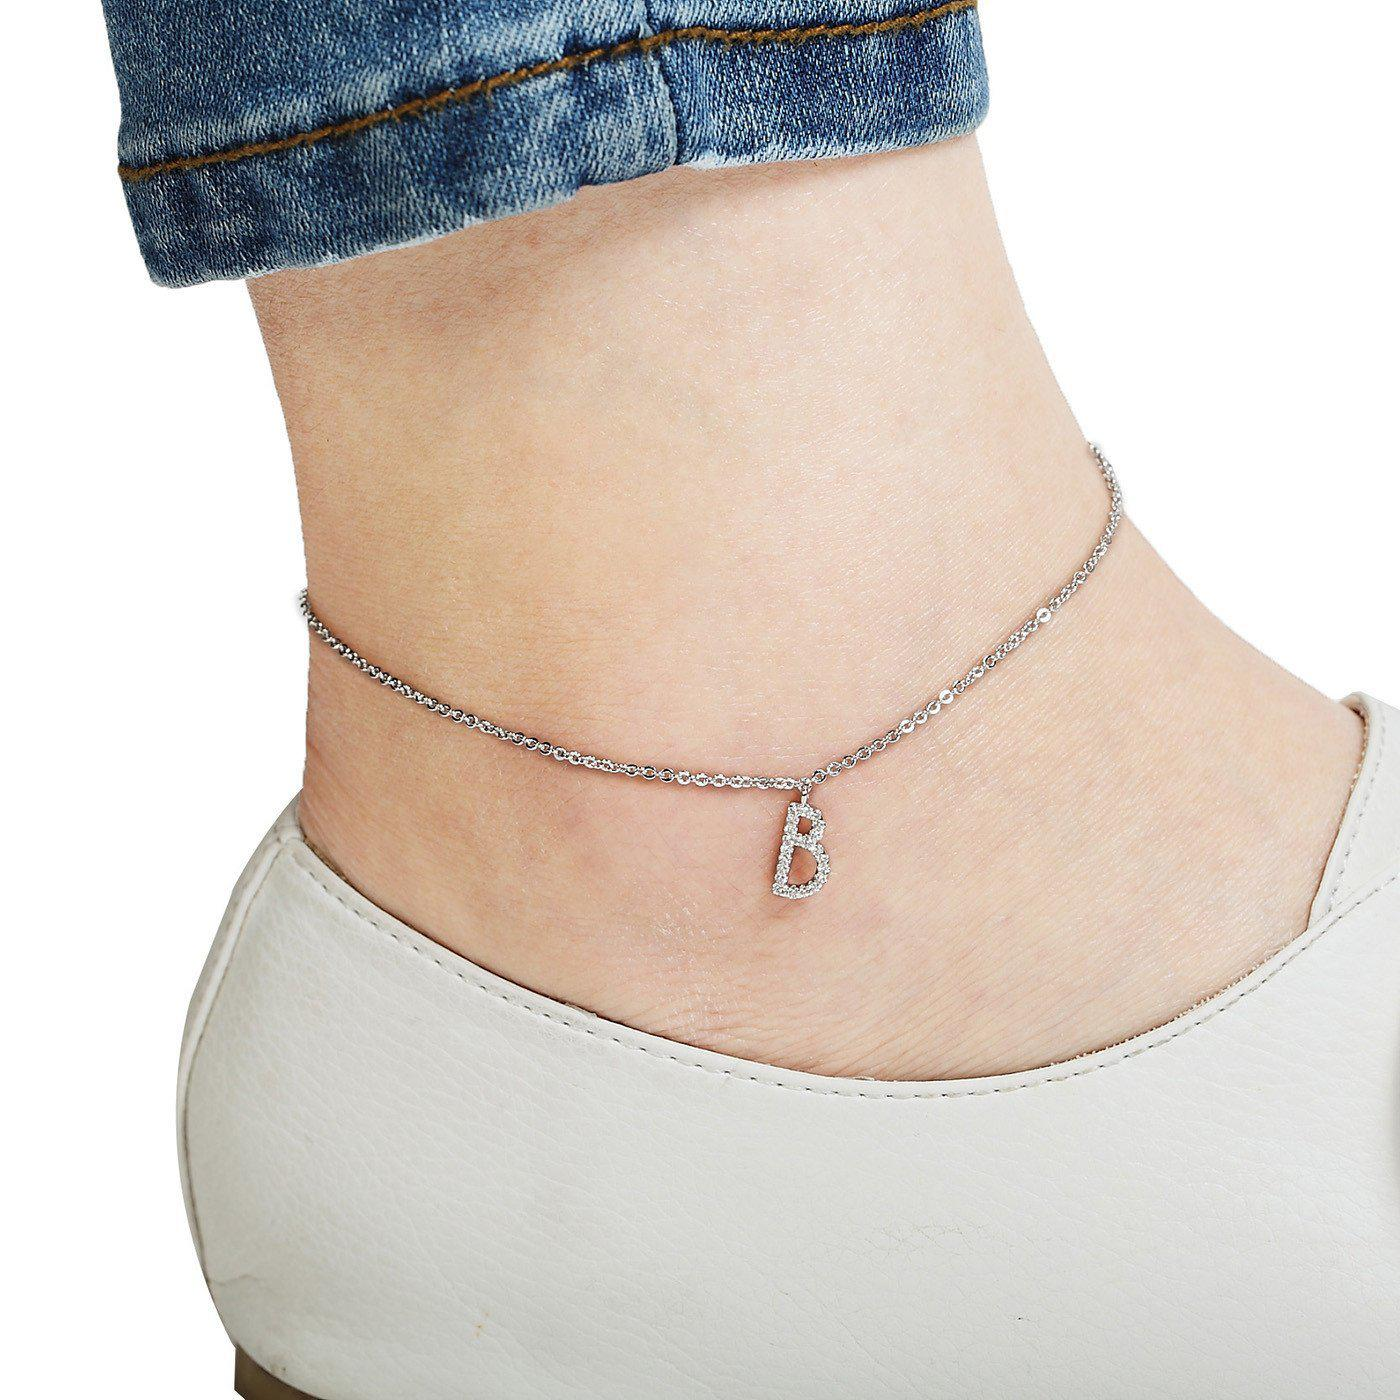 Your Initial B Anklet-Blinglane